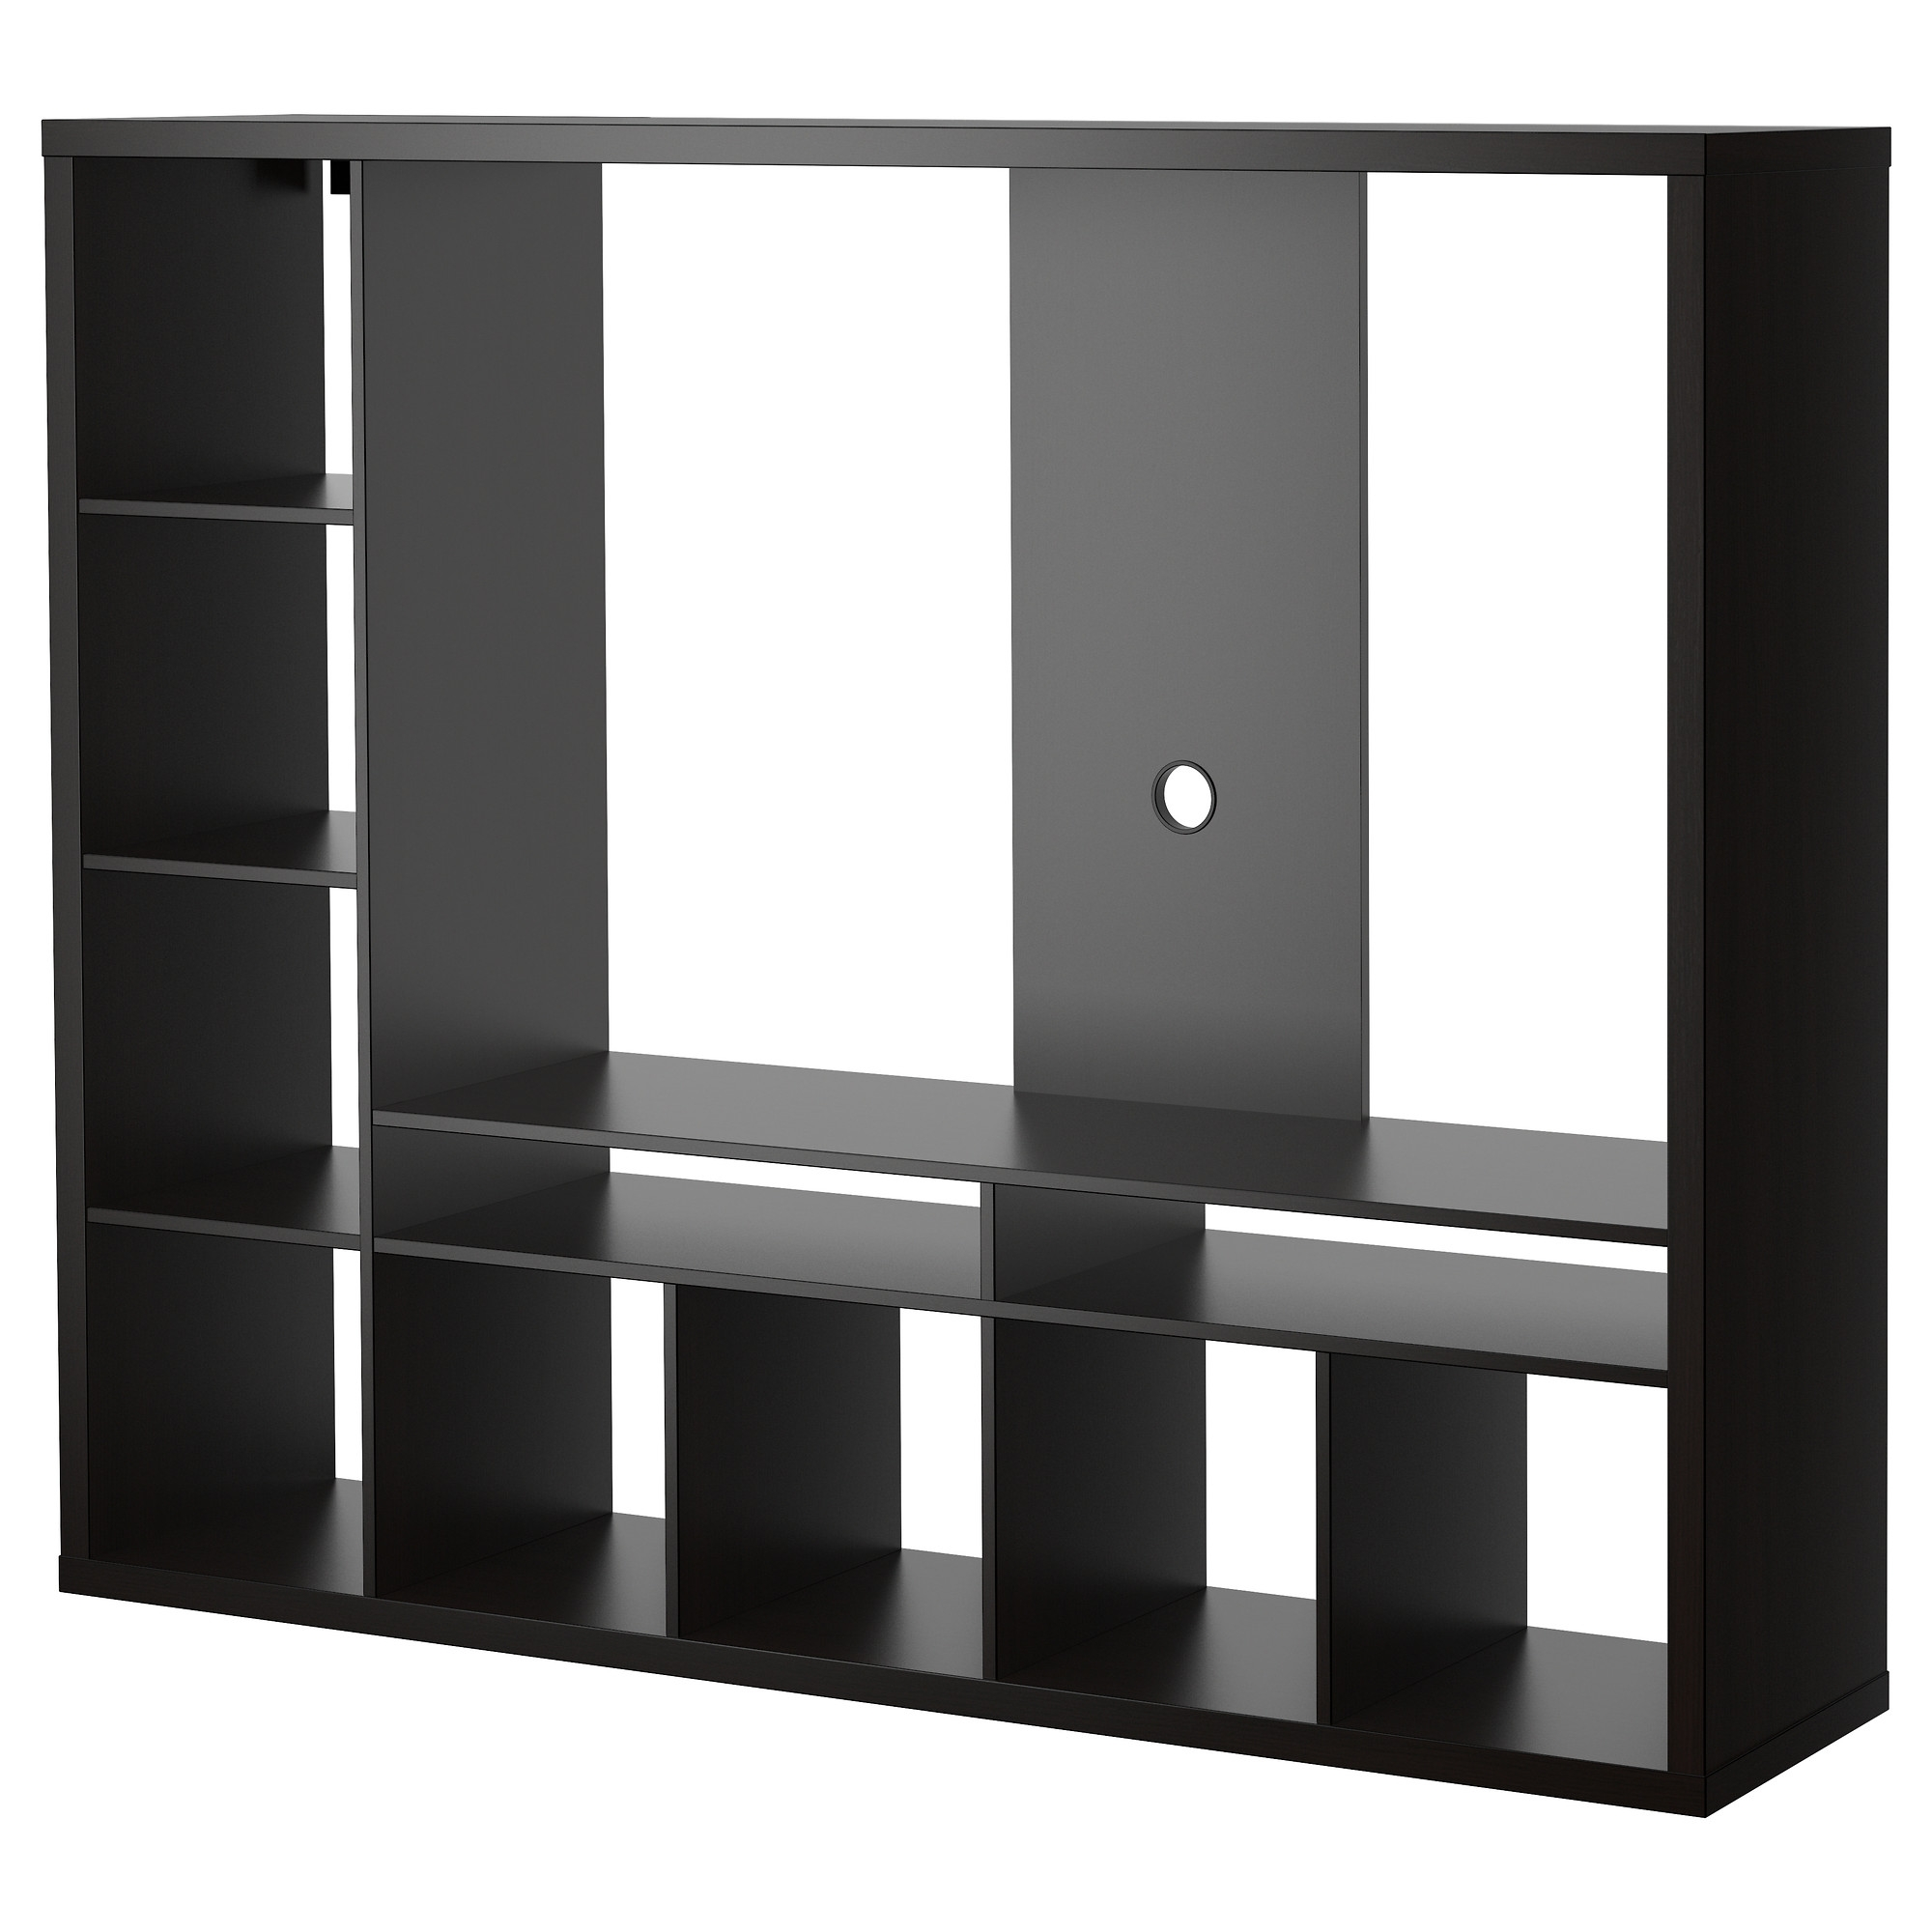 Lappland Tv Storage Unit Black Brown 183×147 Cm Ikea Intended For Tv Storage Units (View 2 of 15)